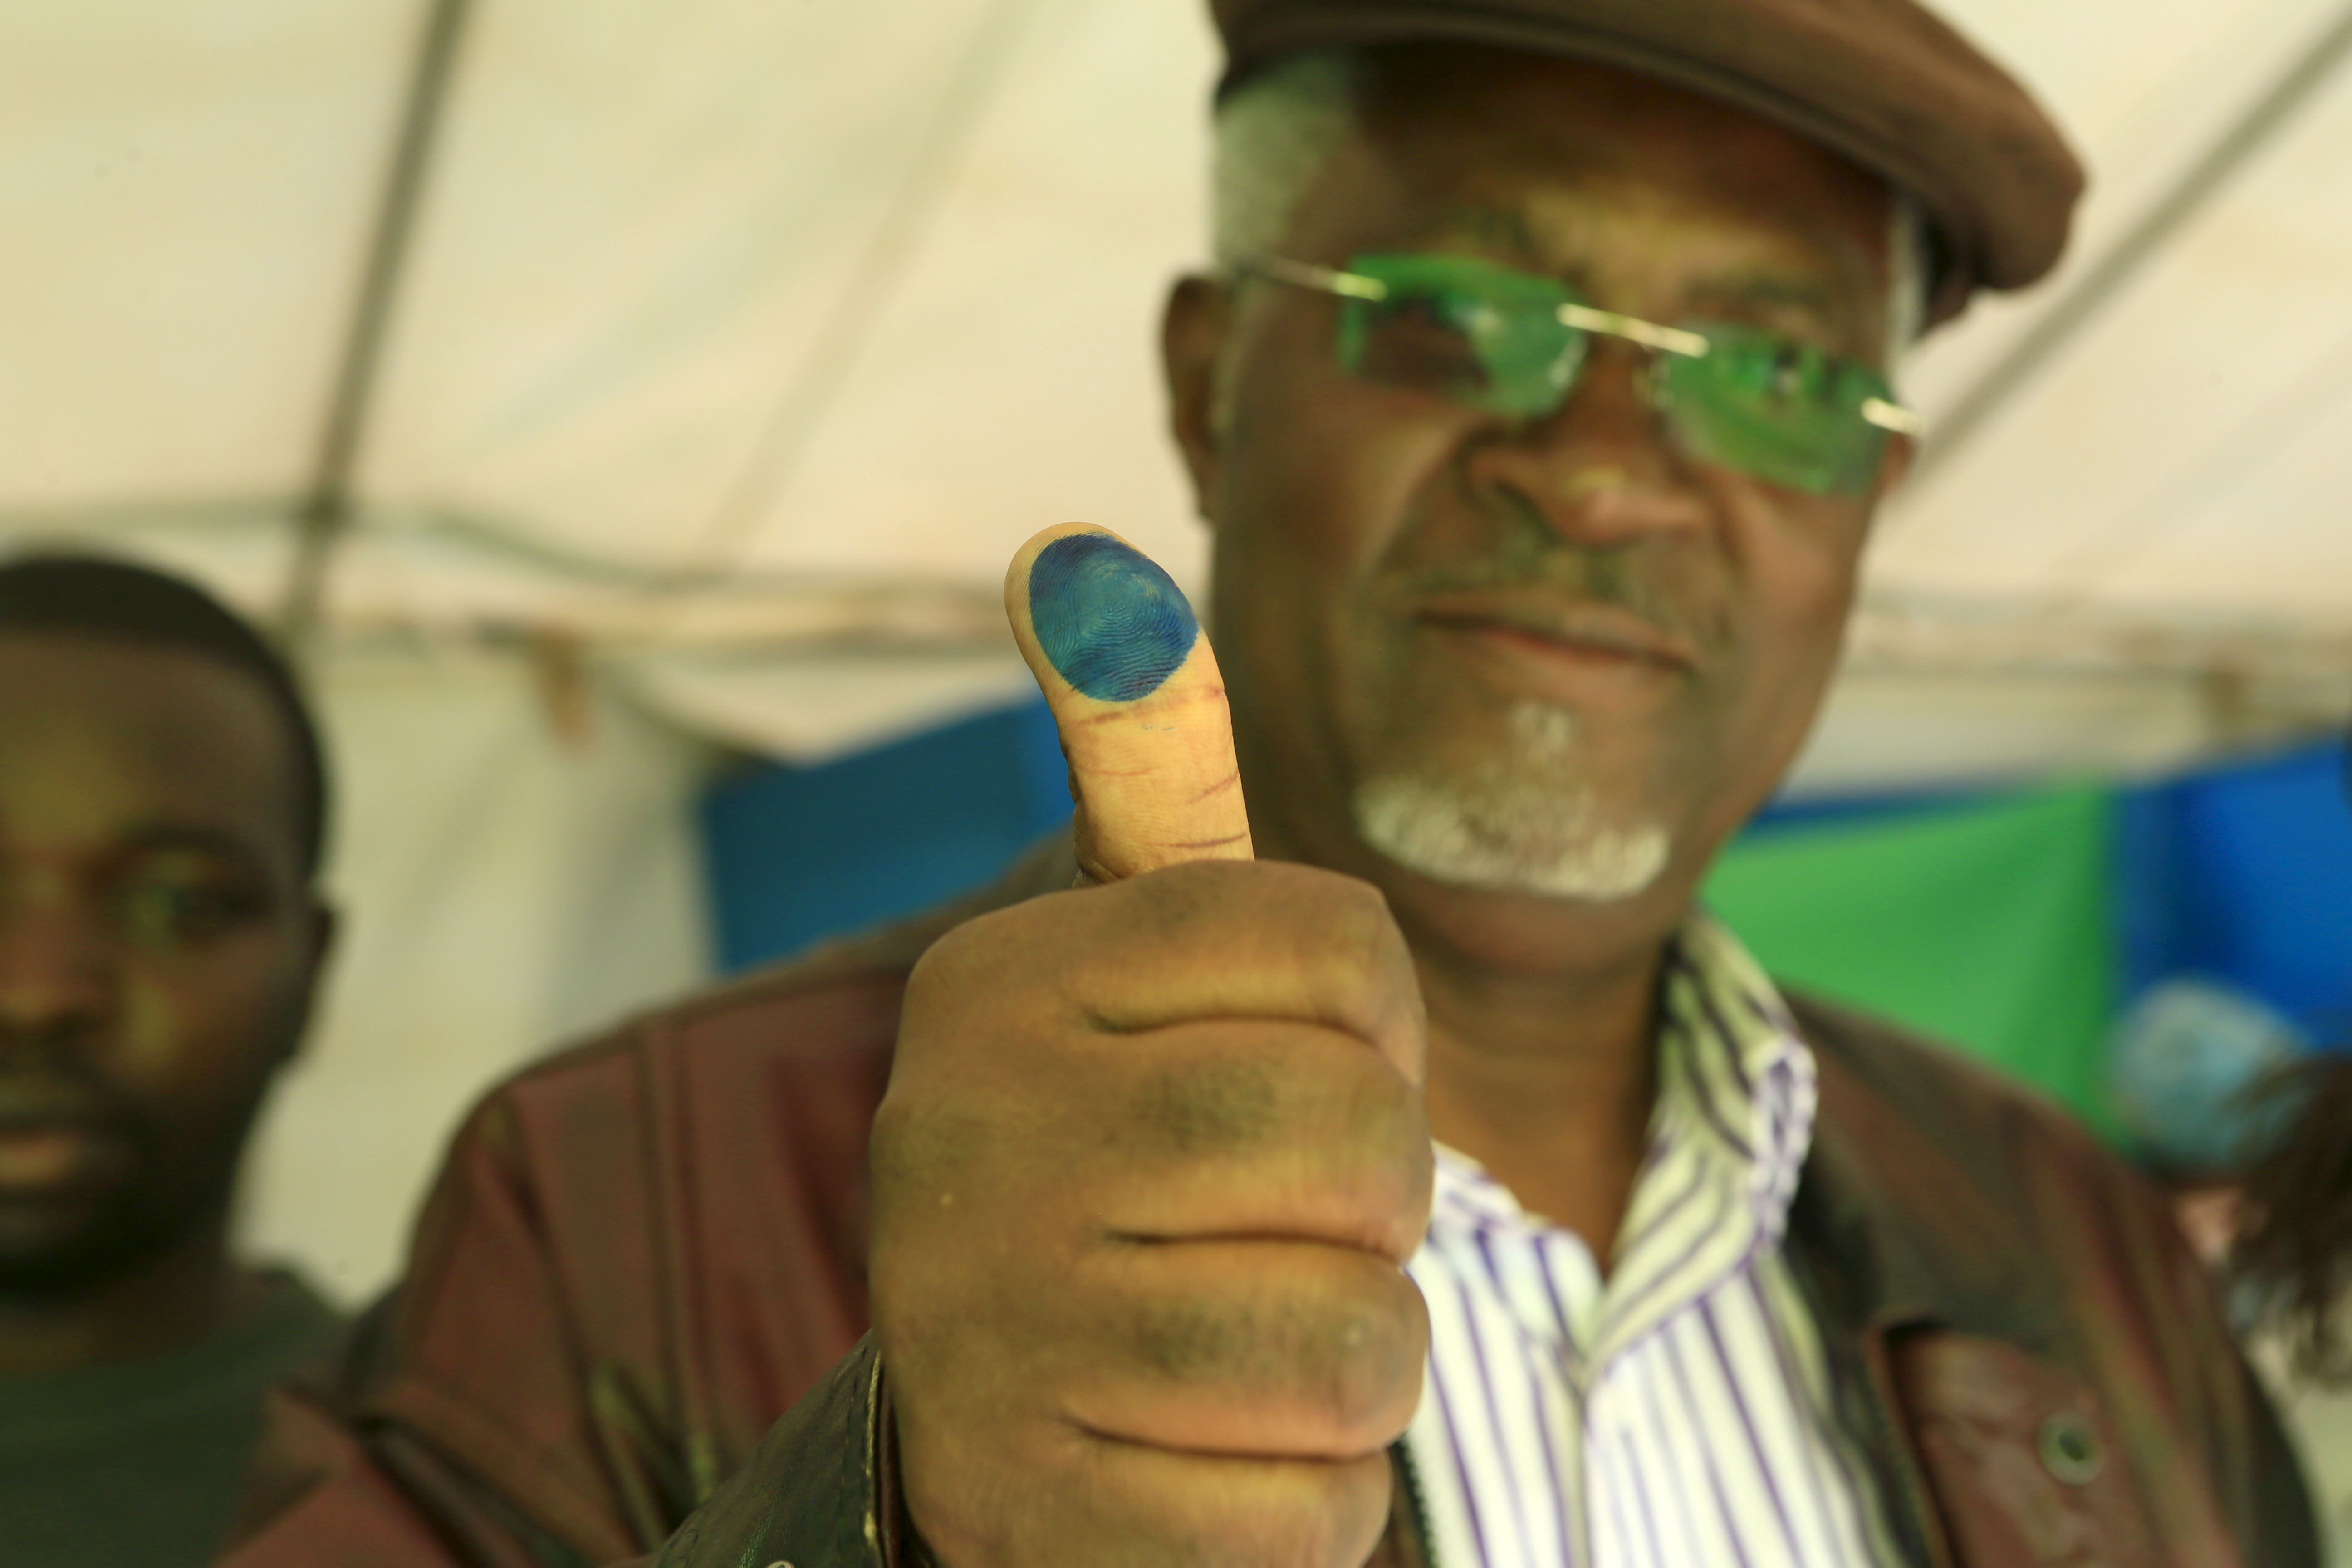 A voter shows off his inked thumb after casting vote in Rwanda's capital Kigali December 18, 2015, during a referendum as Rwandans vote to amend its Constitution to allow President Paul Kagame to seek a third term.